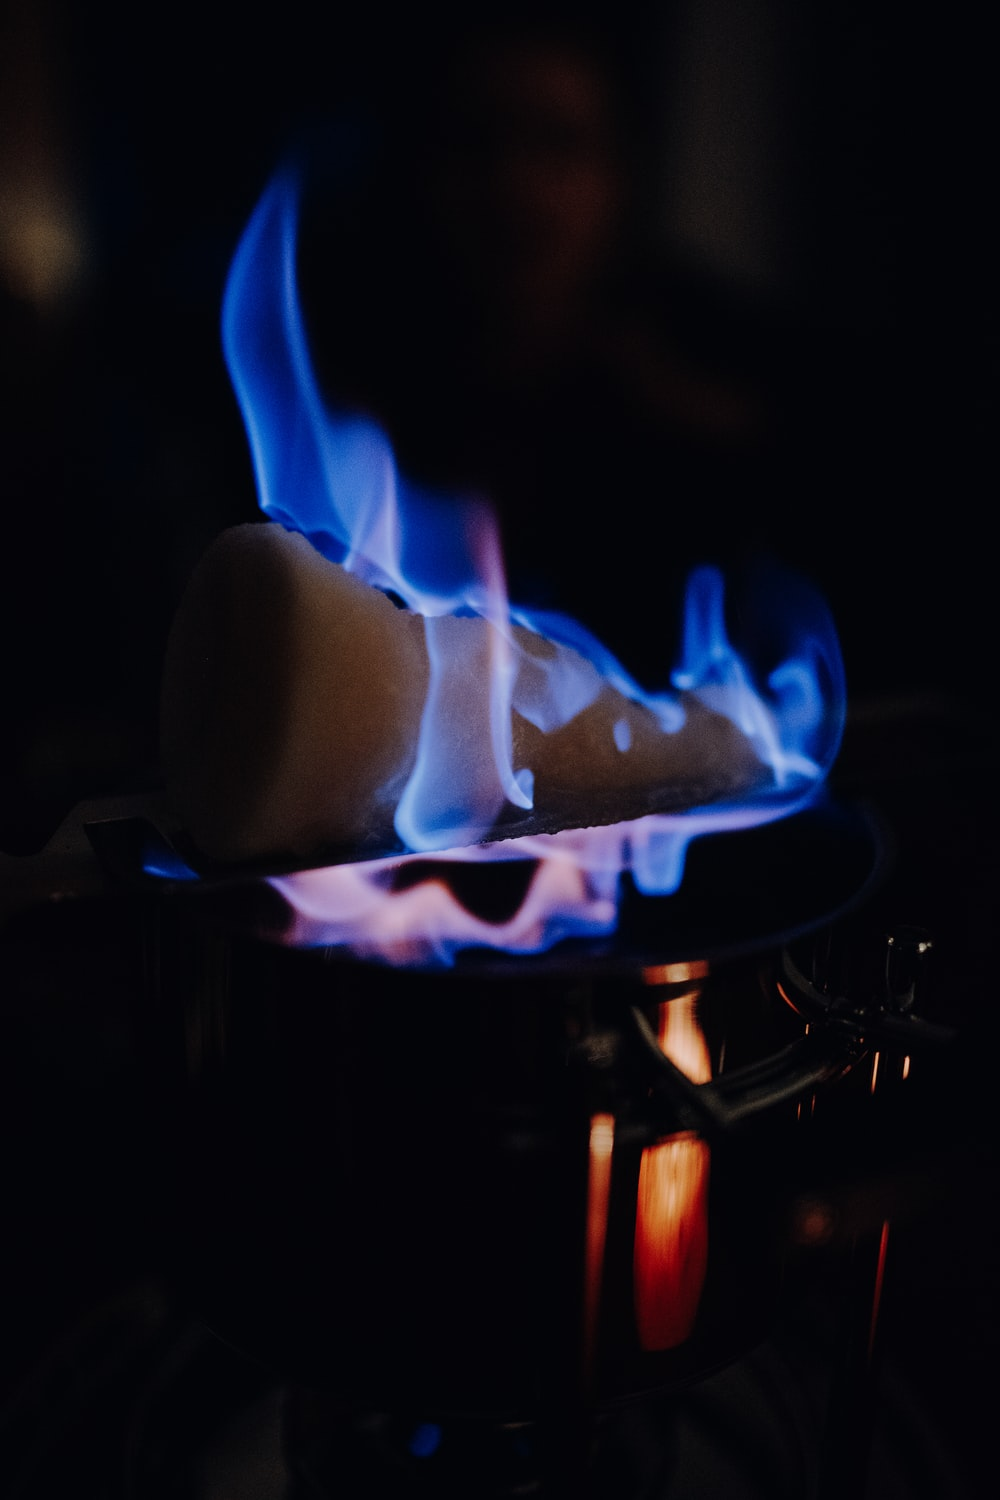 blue and white fire in black metal grill